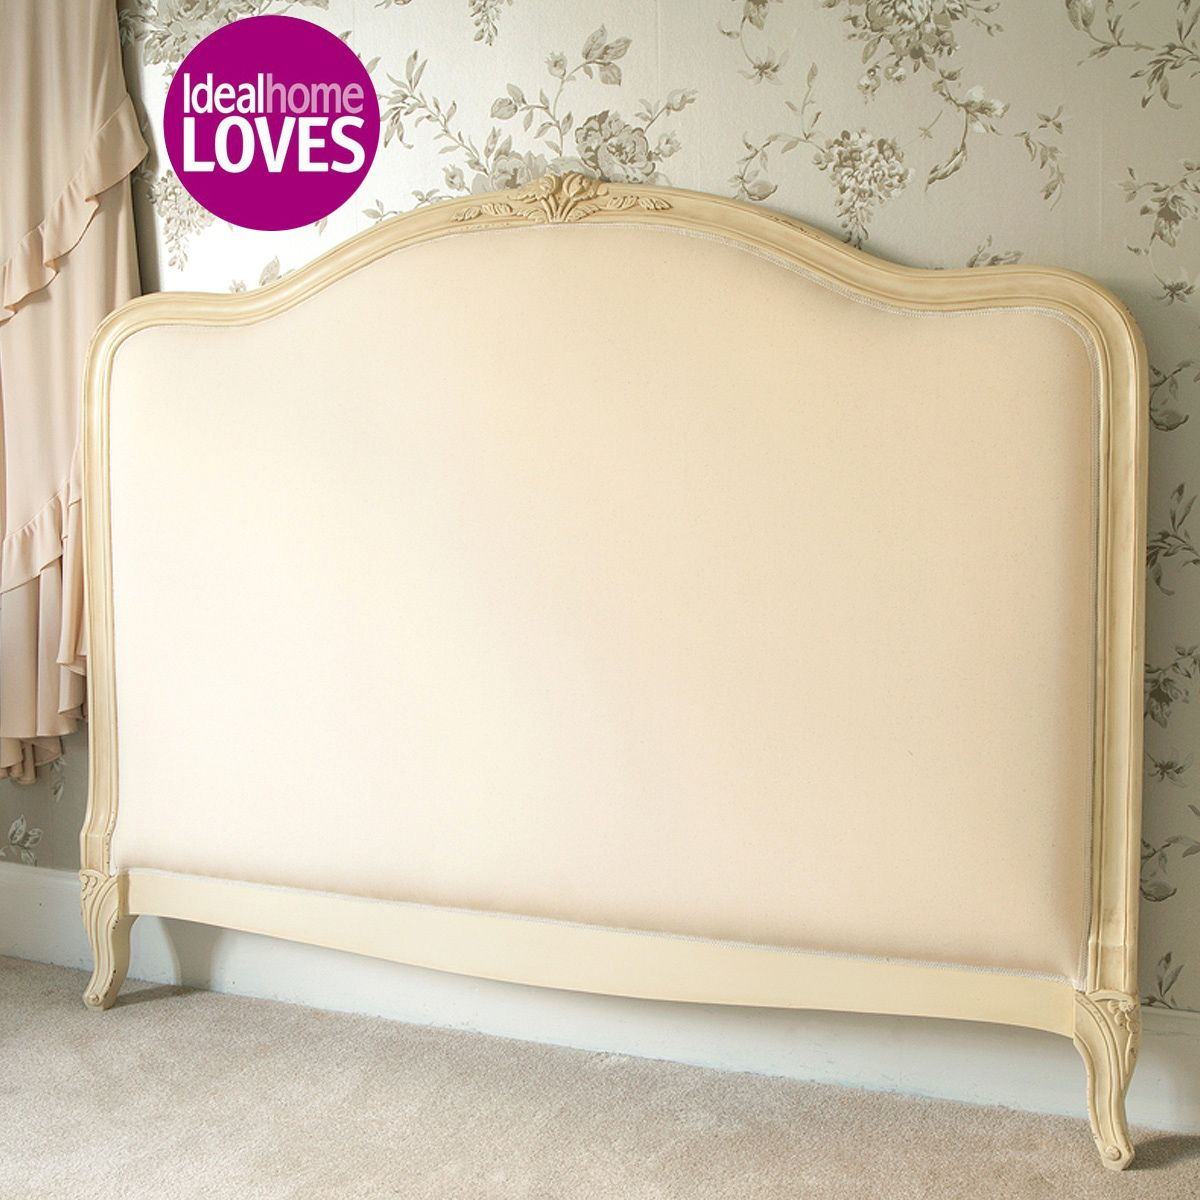 Parisian Upholstered Headboard Headboards Beds Mattresses French Bedroom Company Bedroom Bed Design French Inspired Bedroom Parisian Room